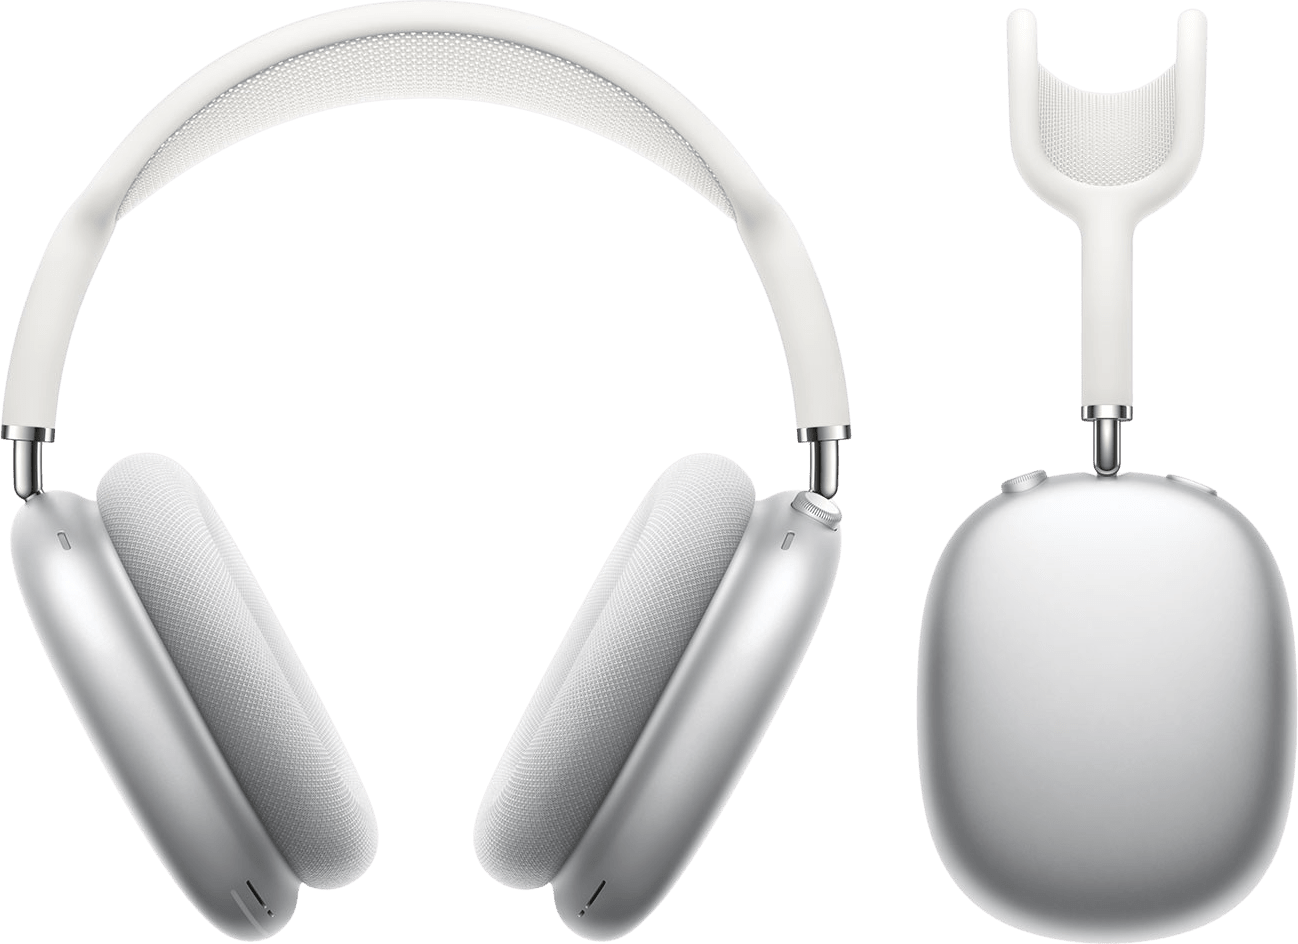 Apple AirPods Max Noise-cancelling Over-ear Bluetooth Headphones